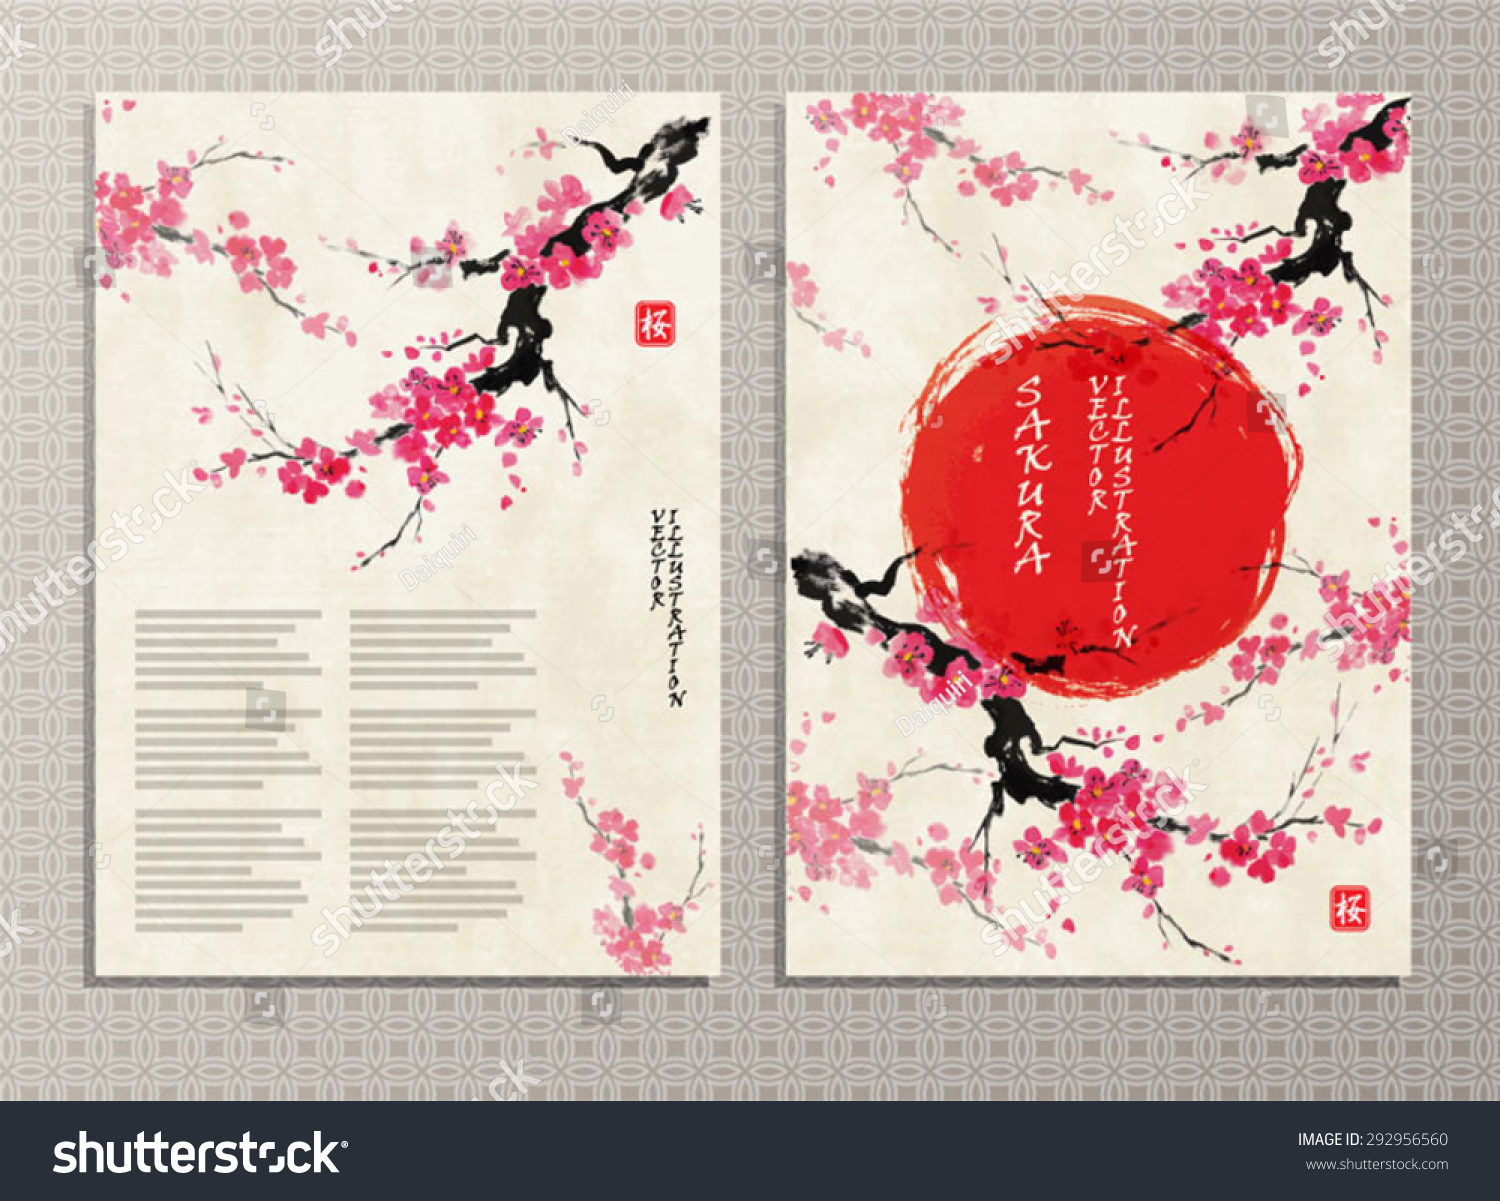 Vertical banners with blossoming oriental cherry branch in traditional japanese sumi-e style on vintage watercolor background Hieroglyph sakura